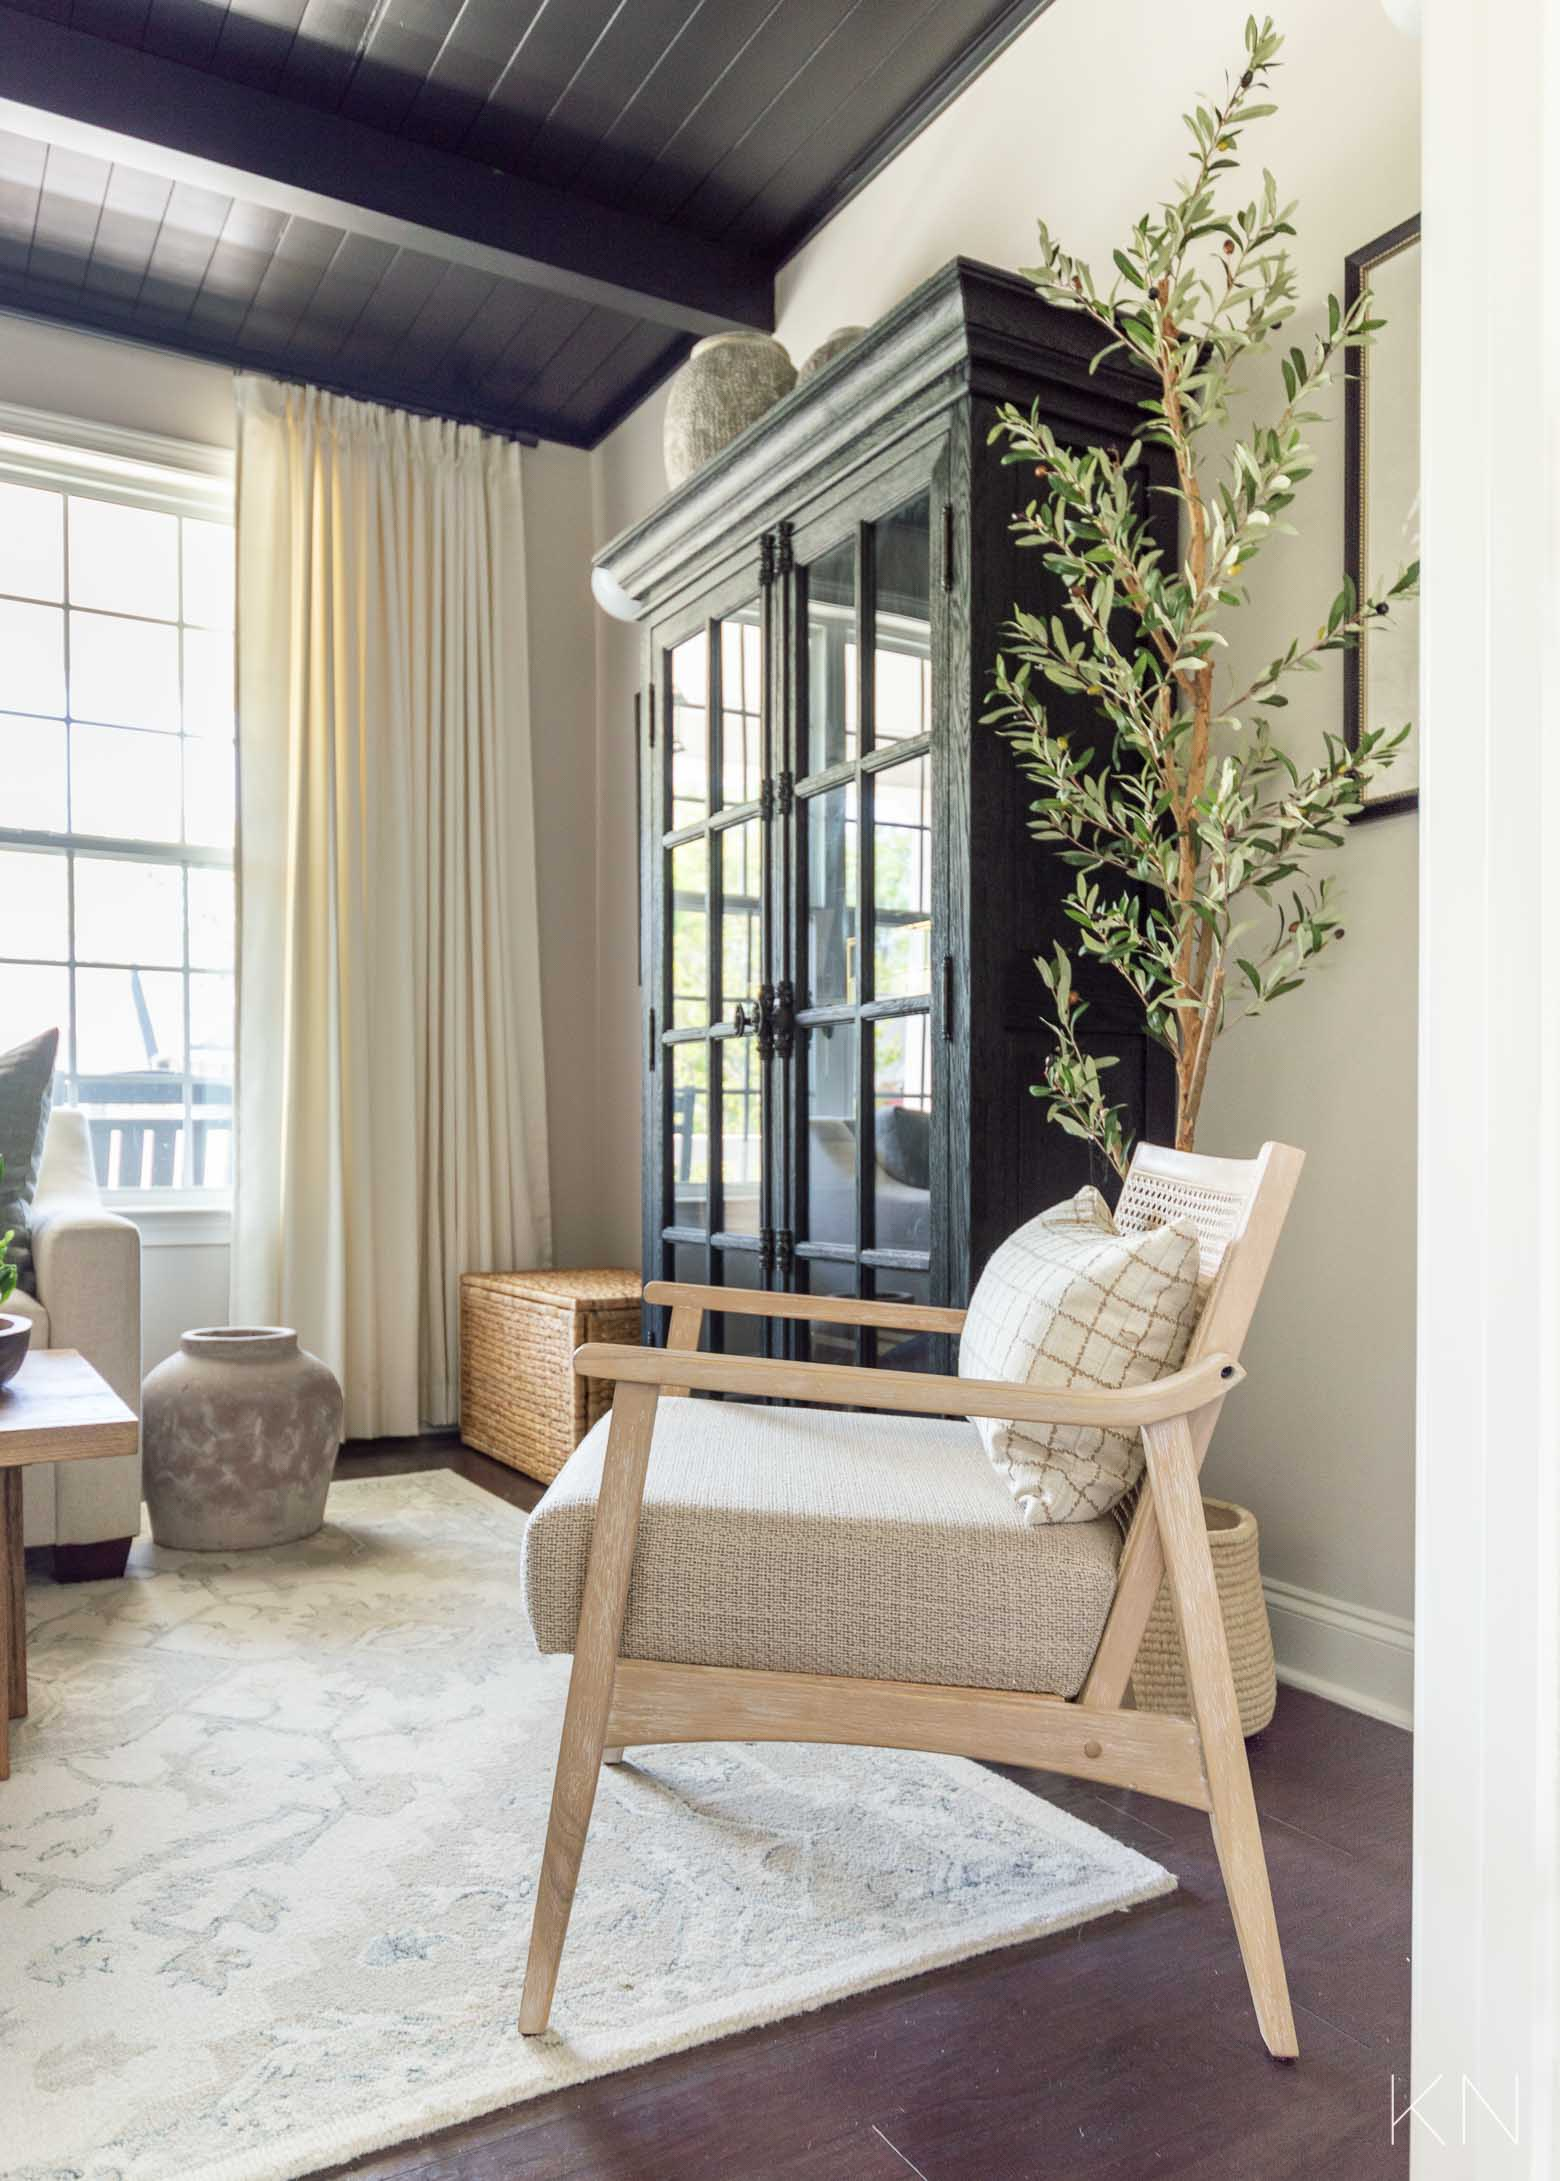 Transitional Decor for a Conversation Room Makeover